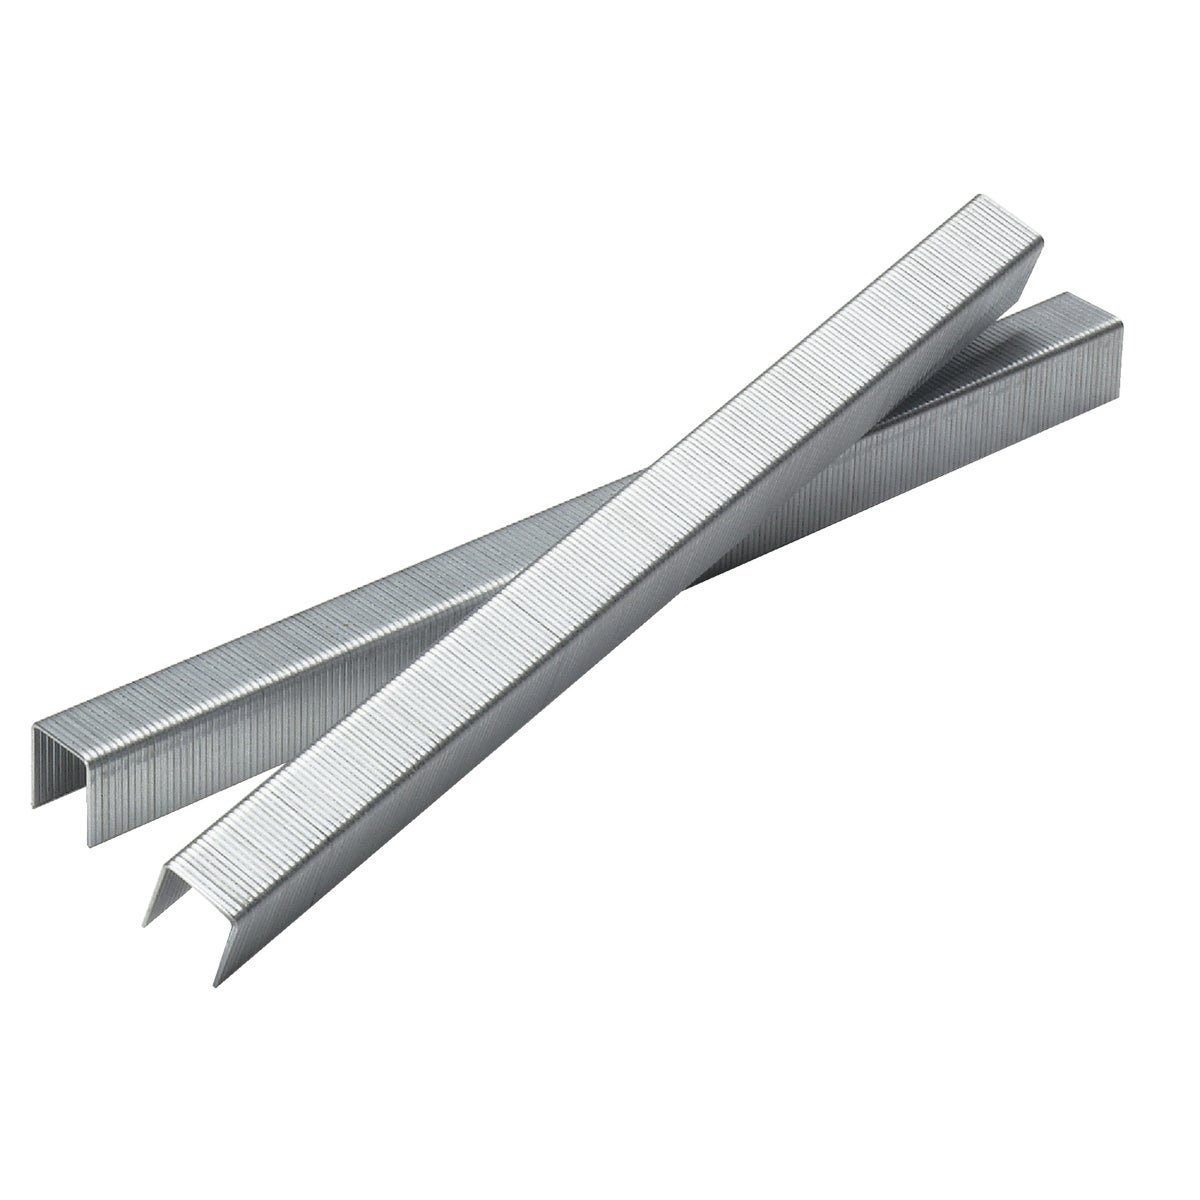 "600CT 18GA 1-1/2"" STAPLE - A801509 by Senco Brands"